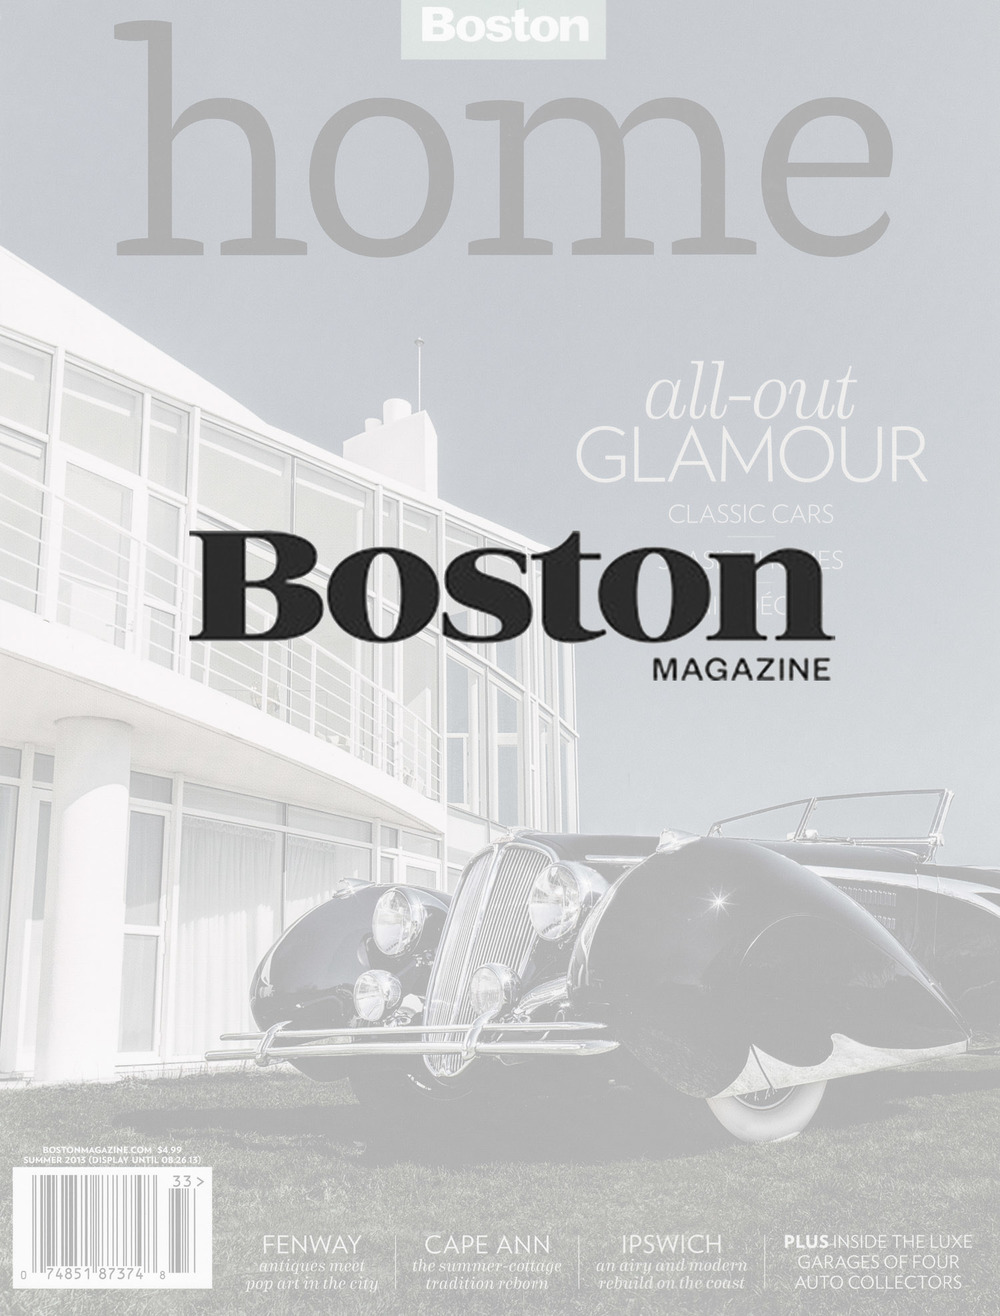 boston magazine cover.jpg